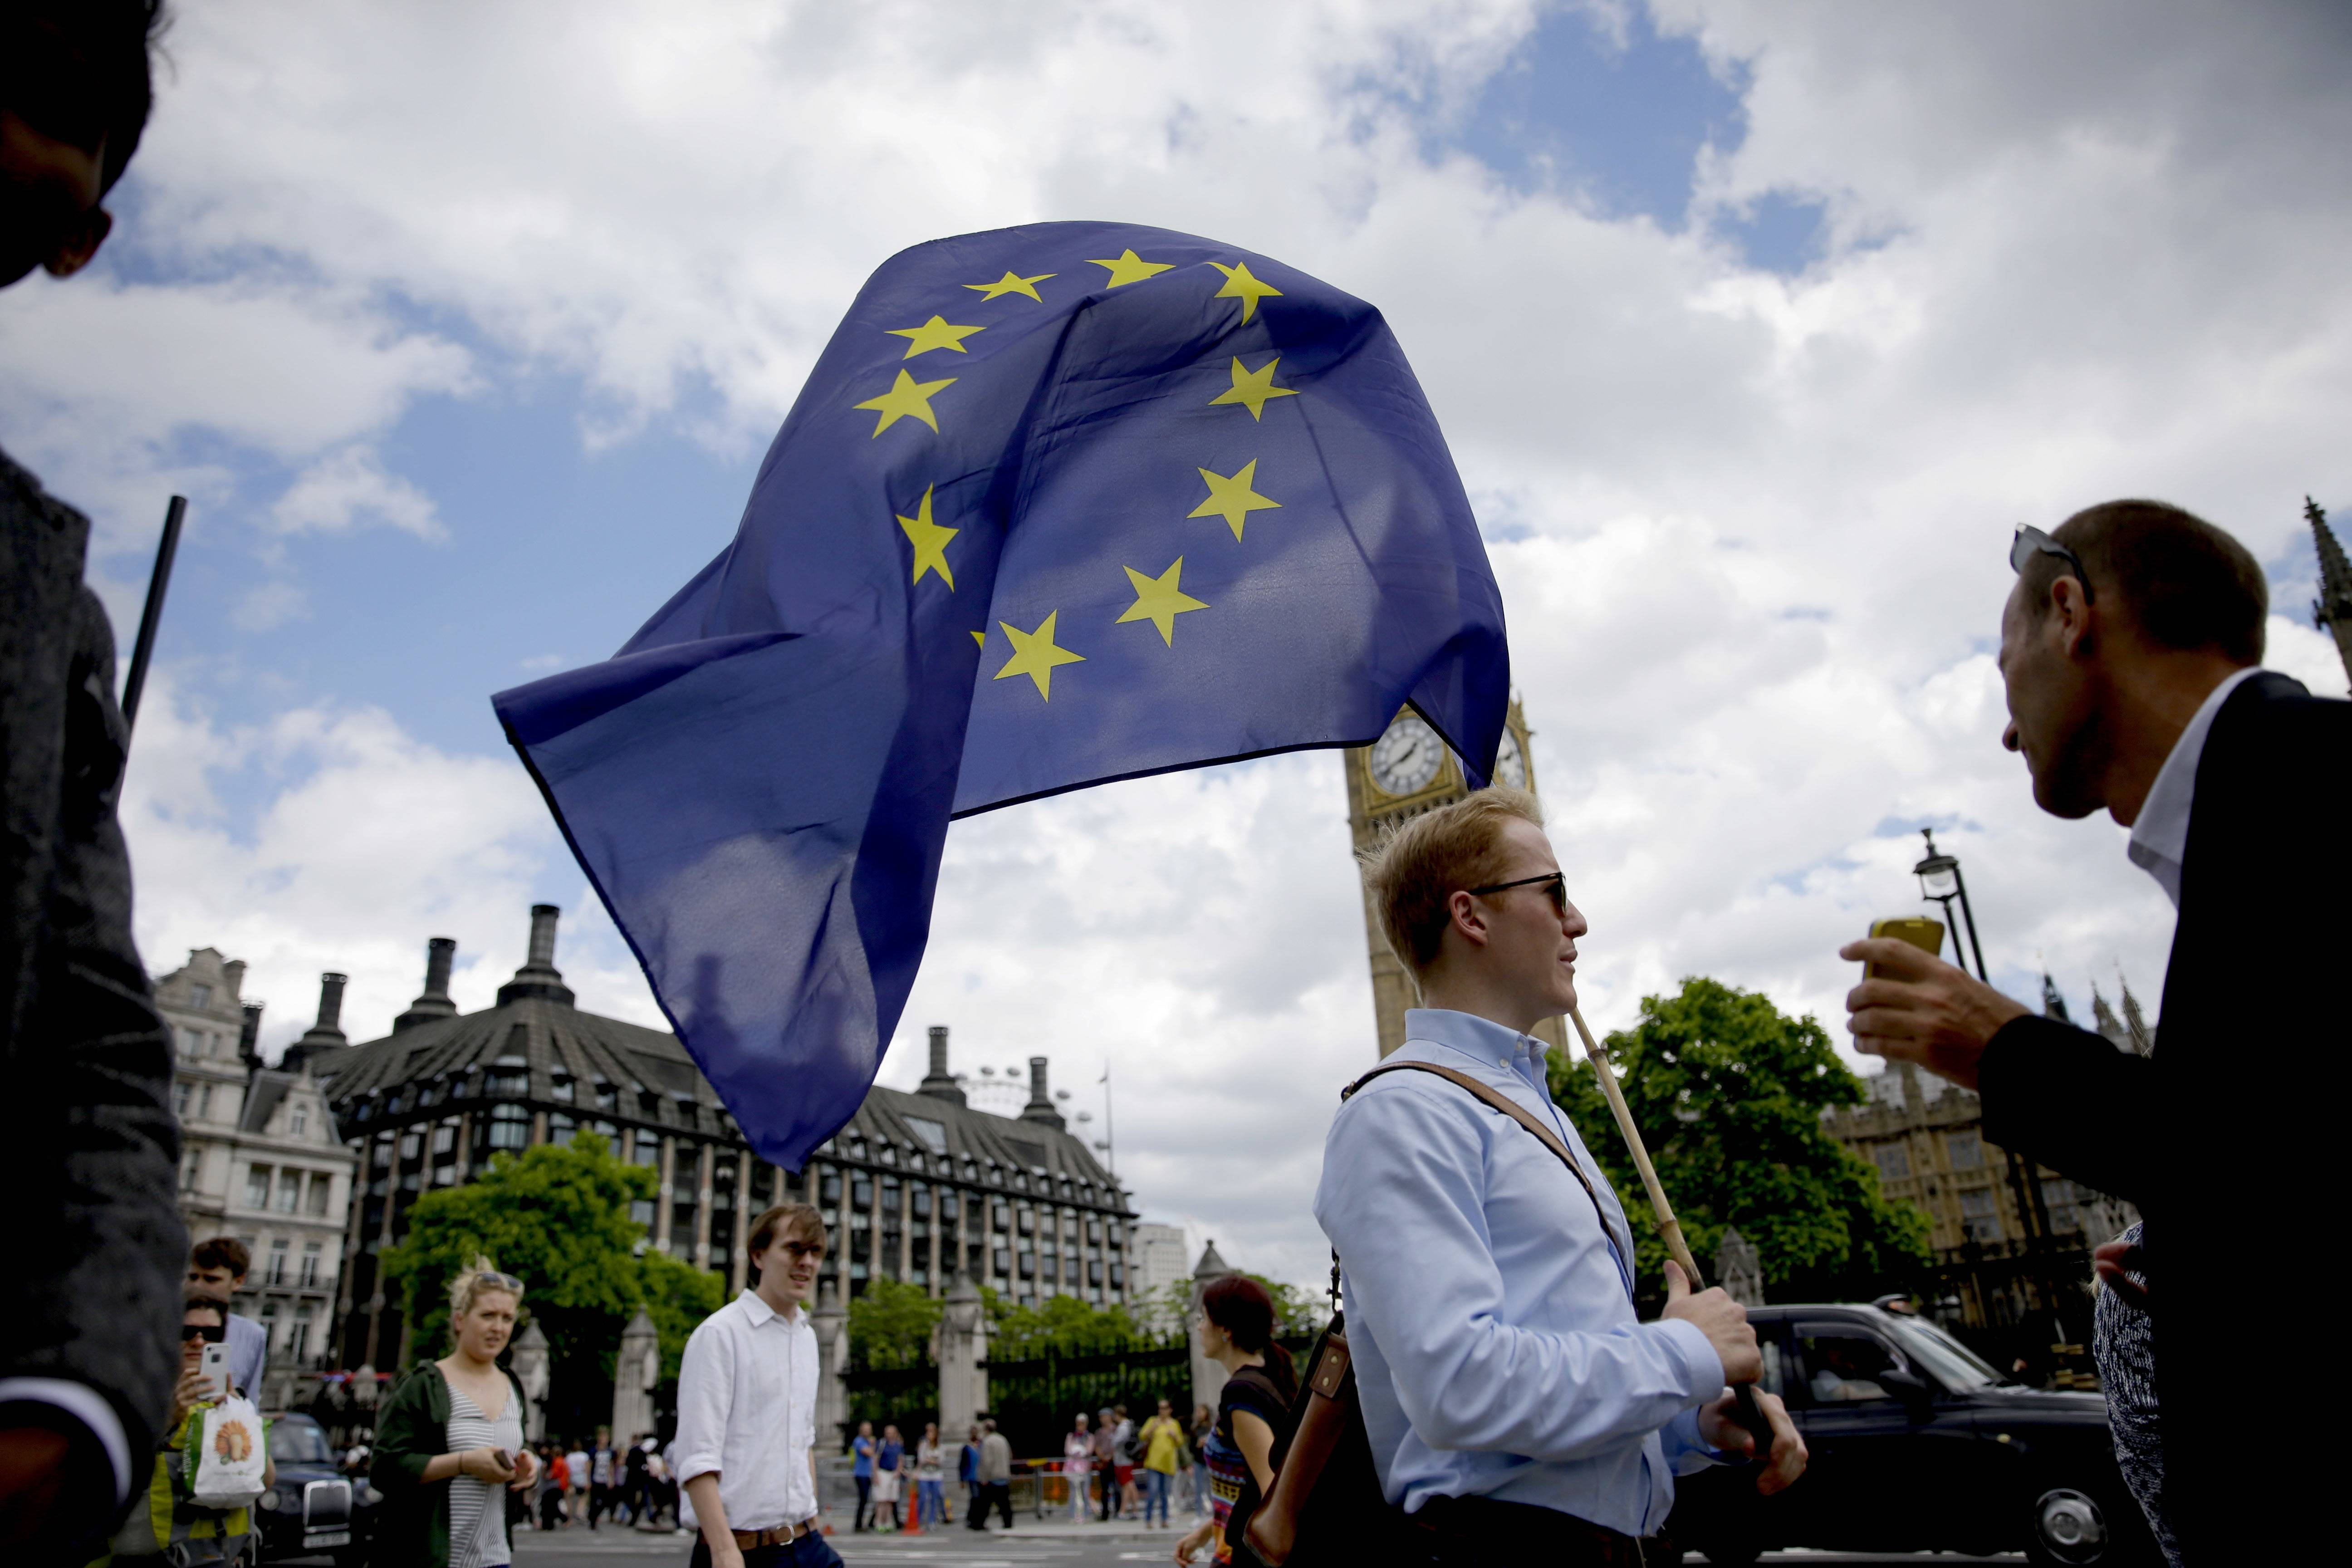 A remain supporter stops to talk to people as he walks around with his European flag across the street from the Houses of Parliament in London, Friday, June 24, 2016. Britain's Prime Minister David Cameron announced Friday that he will quit as Prime Minister following a defeat in the referendum which ended with a vote for Britain to leave the European Union.